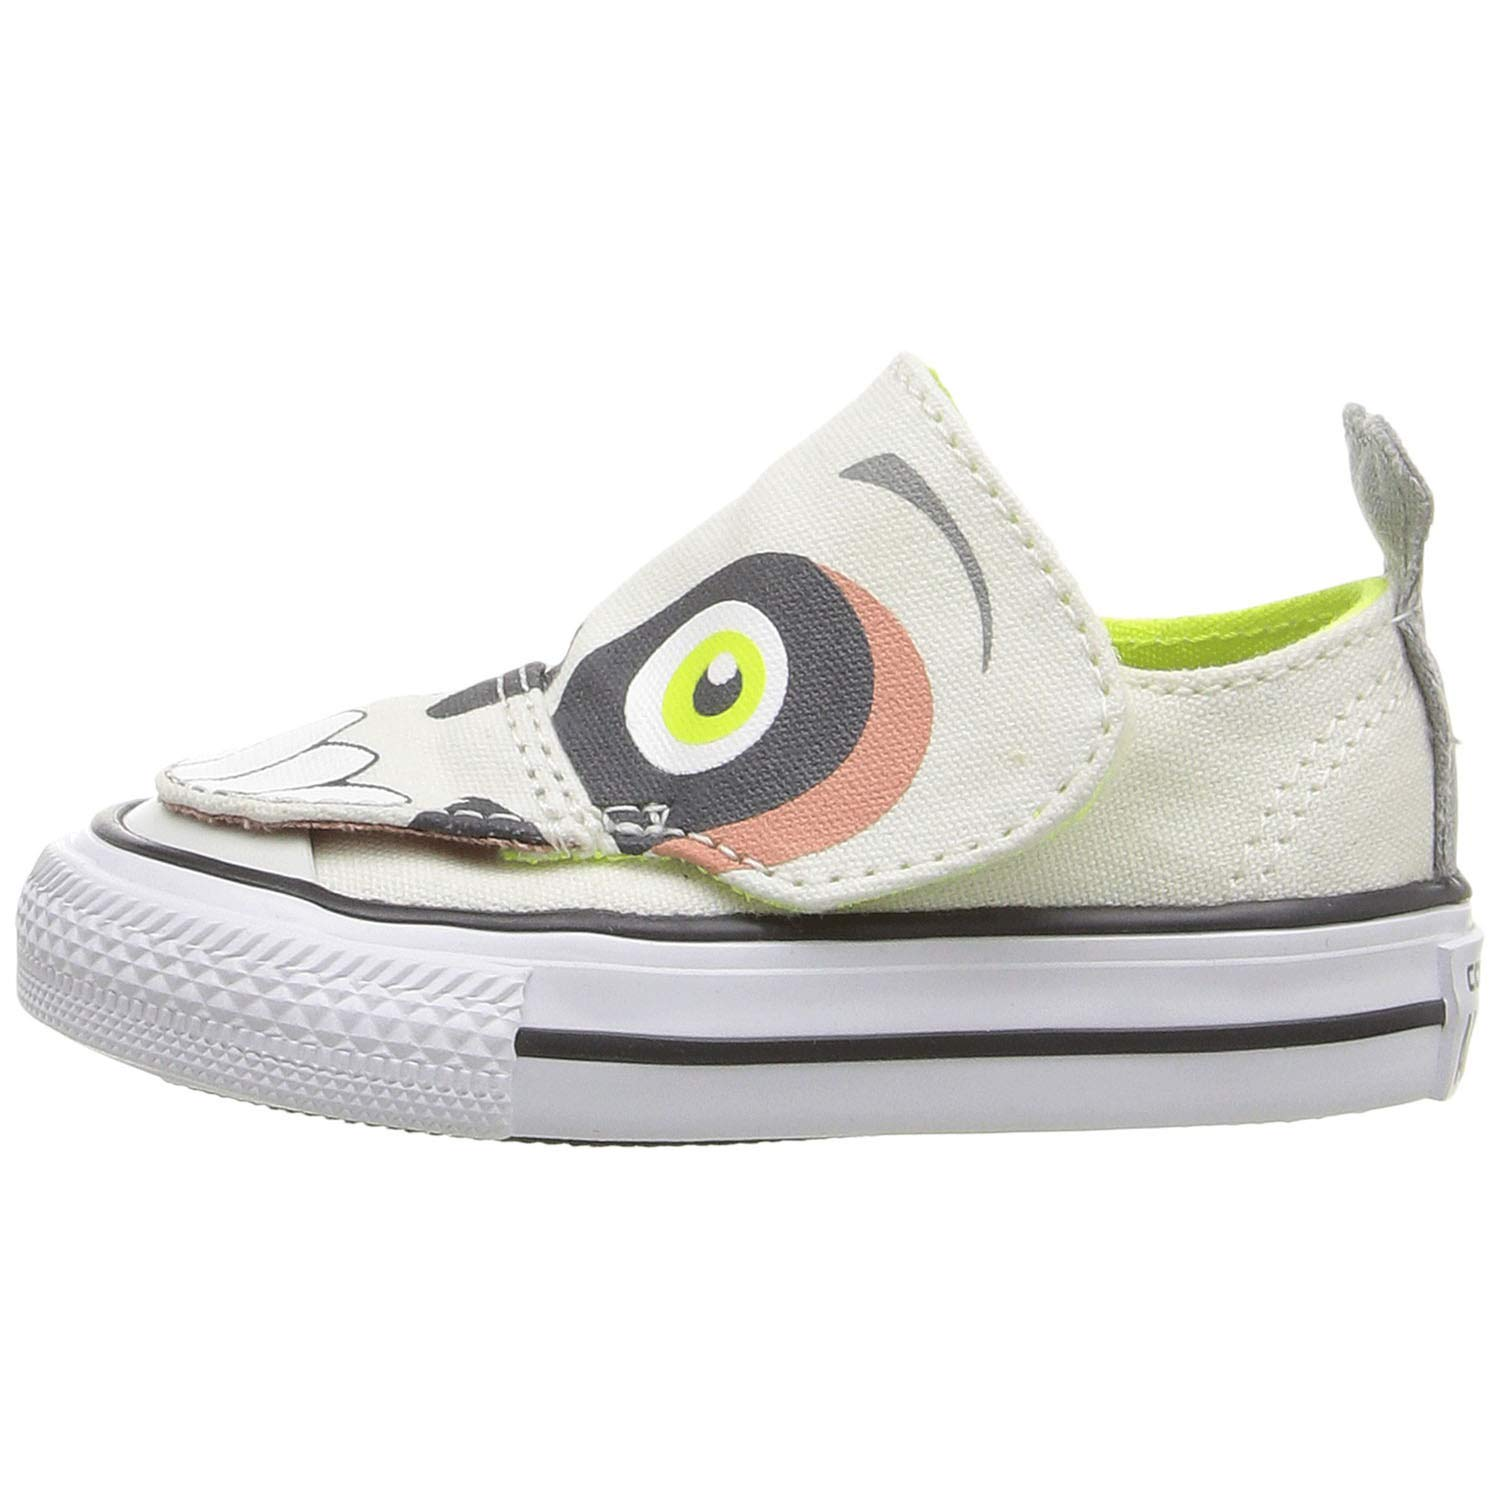 Converse CTAS Creatures Ox Graphic Low Top Fashion Sneakers